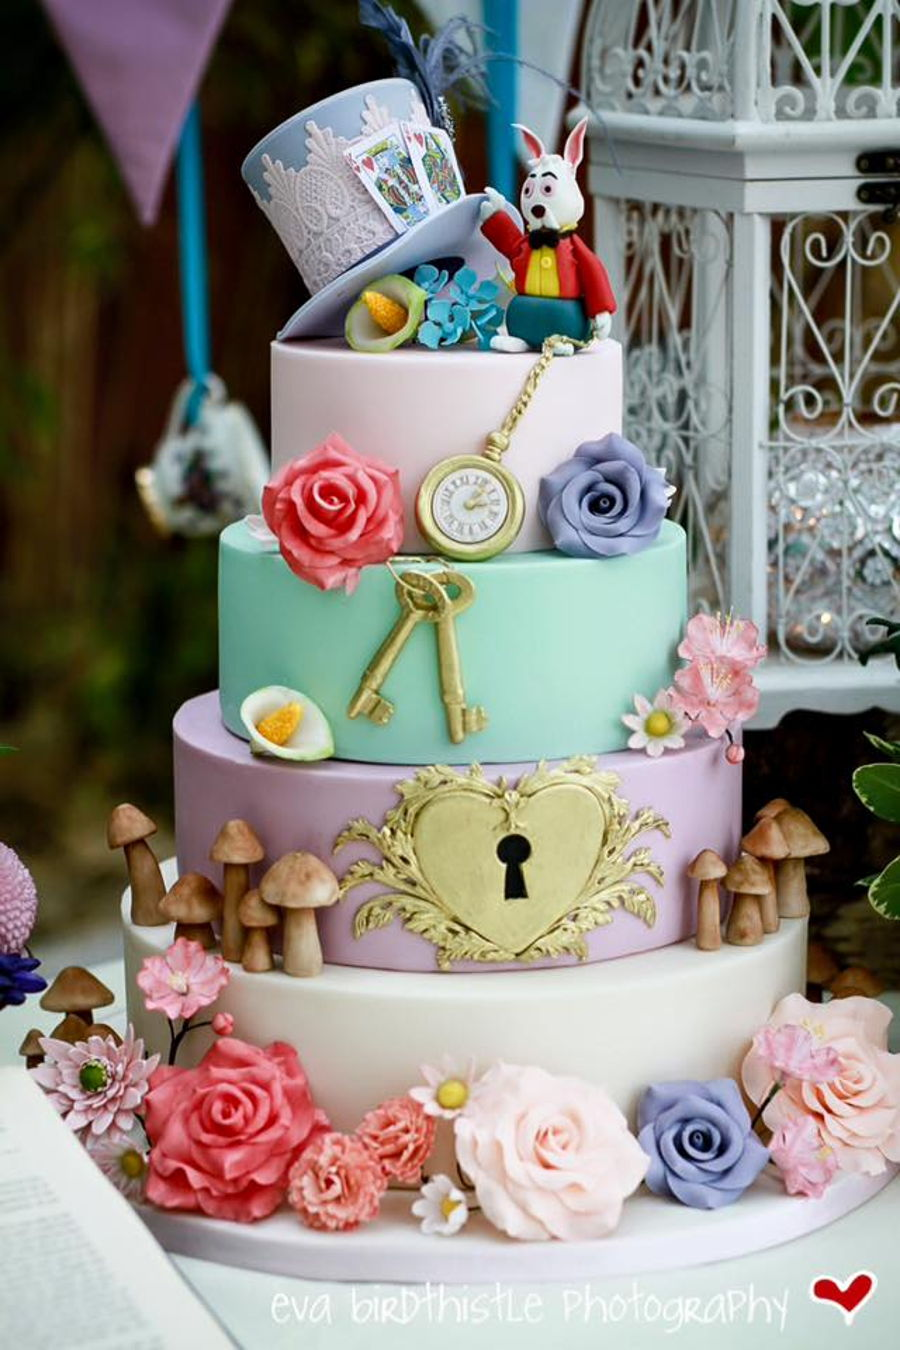 900_whimsical-mad-hatters-tea-party-wedding-cake-925967StHHO